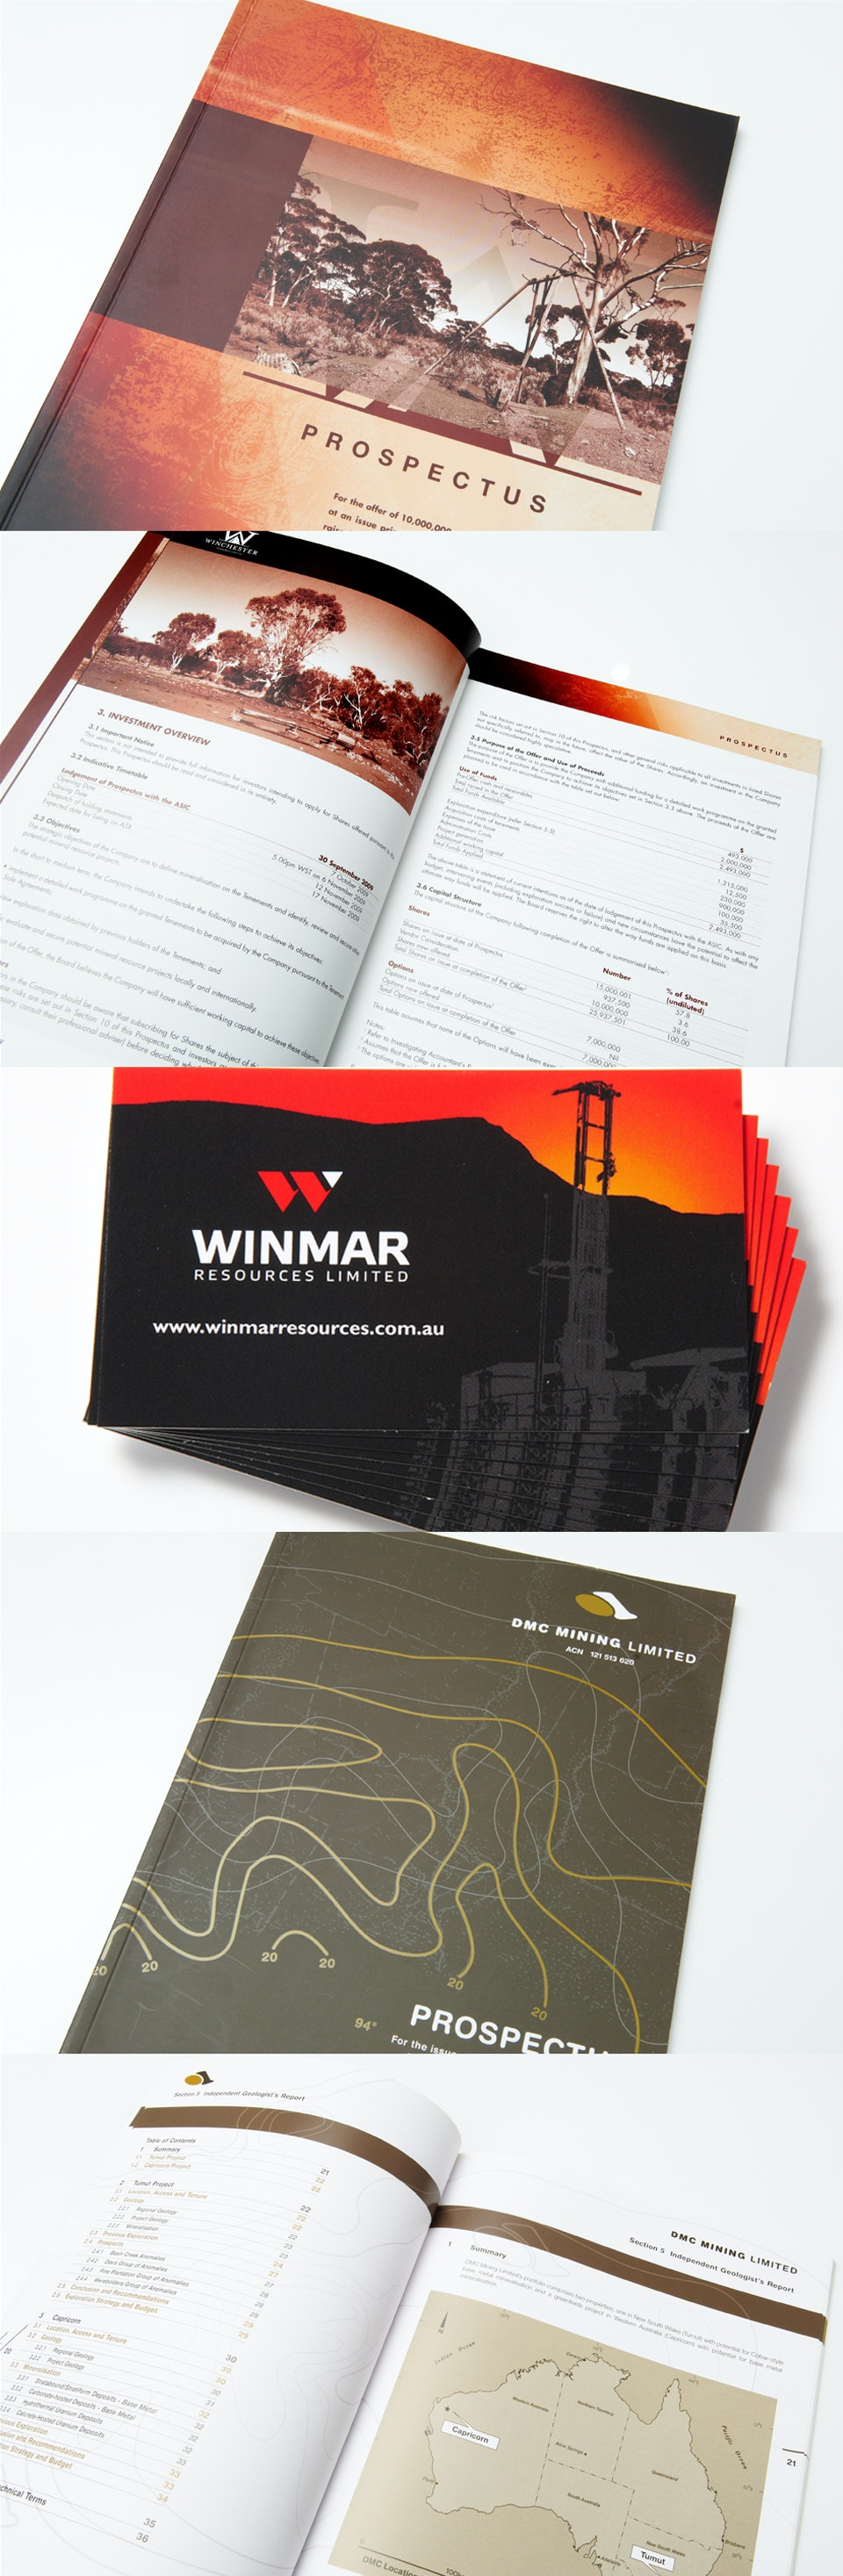 Mining Reports and Business Cards